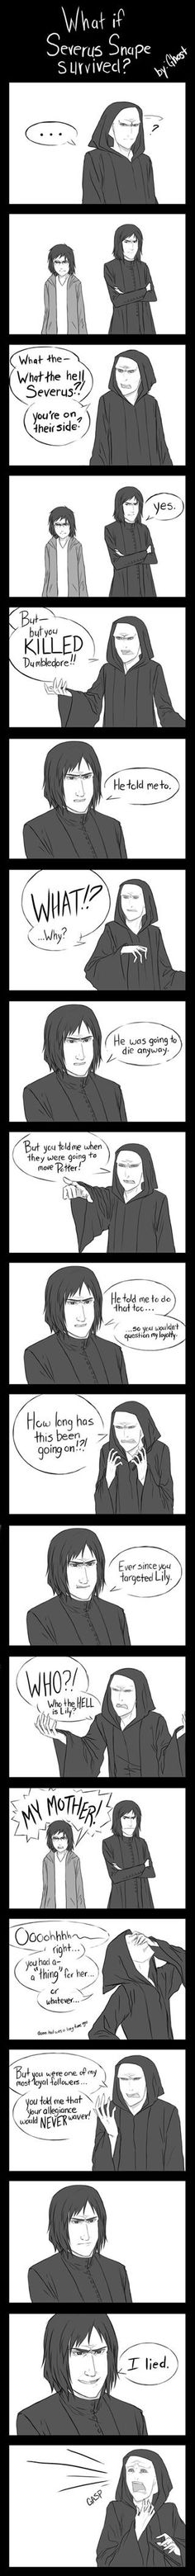 What If Severus Snape Survived? [Comic What If Severus Snape Survived? , What If Severus Snape Survived? I chuckled. I chuckled. Harry Potter Universe, Arte Do Harry Potter, Yer A Wizard Harry, Harry Potter Fandom, Harry Potter Comics, Severus Hermione, Severus Rogue, Draco Malfoy, Snape Harry